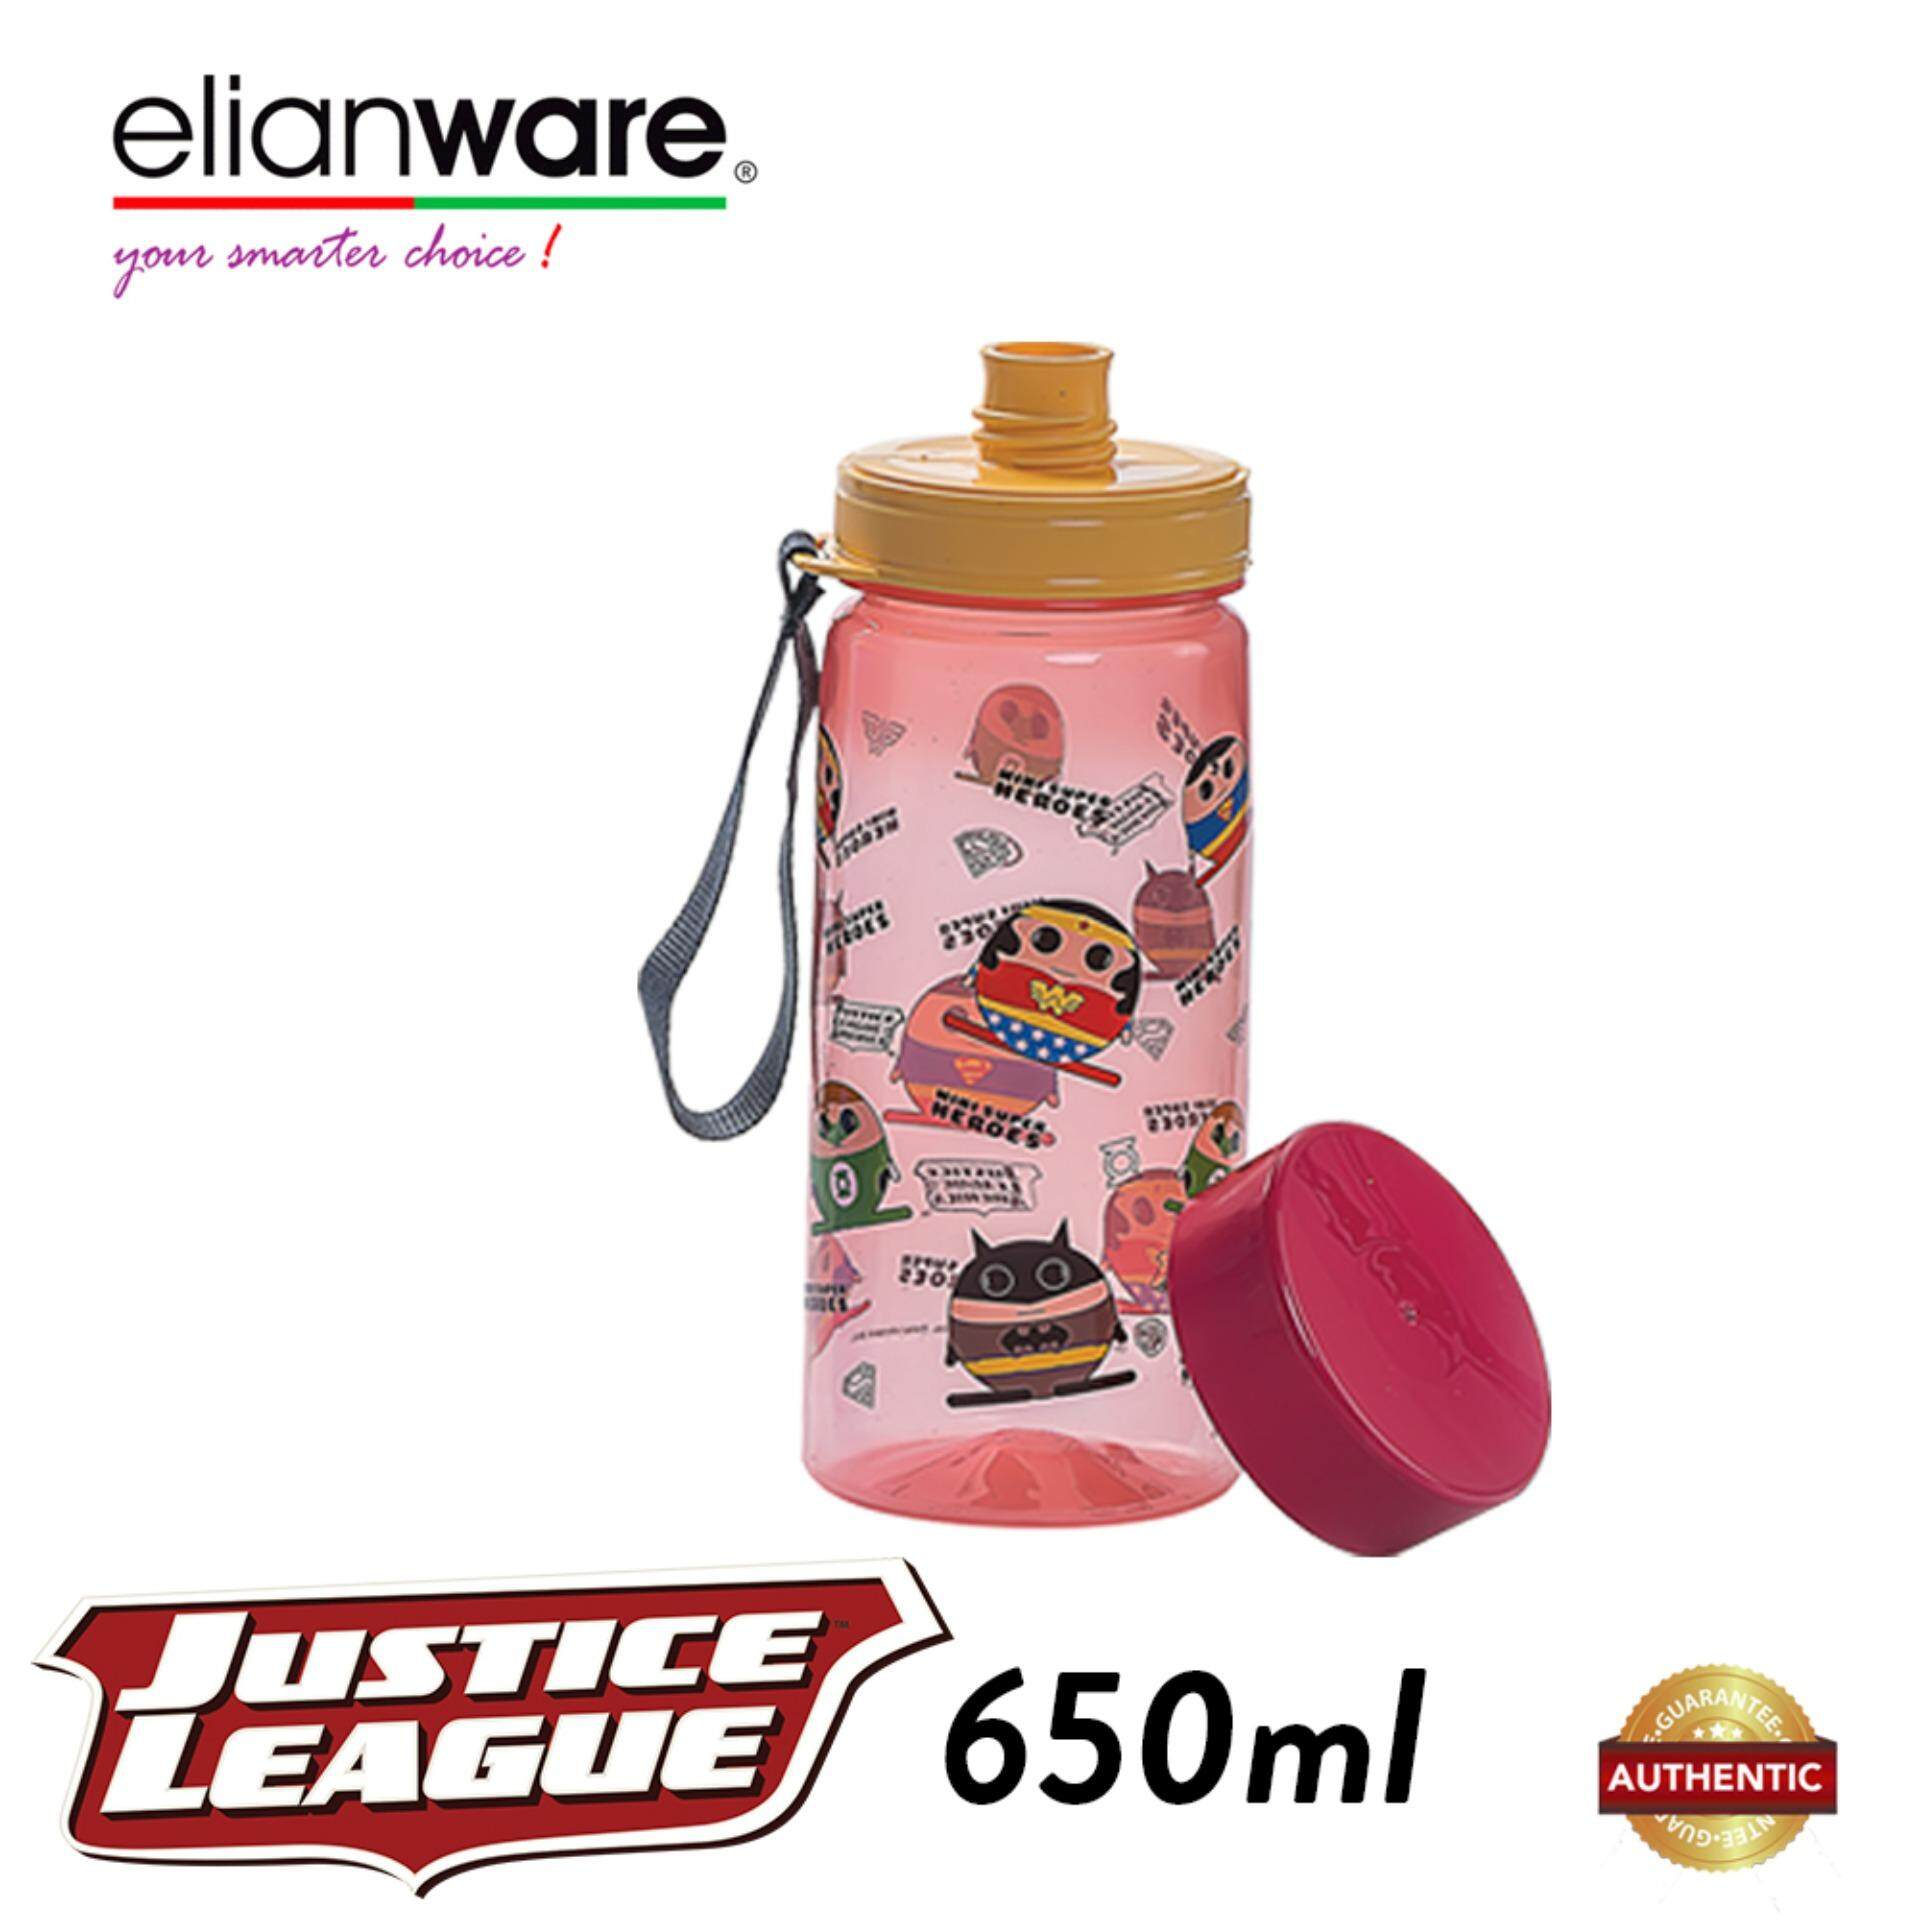 Elianware DC Justice League 650ml BPA Free Mini Super Heroes Water Bottle